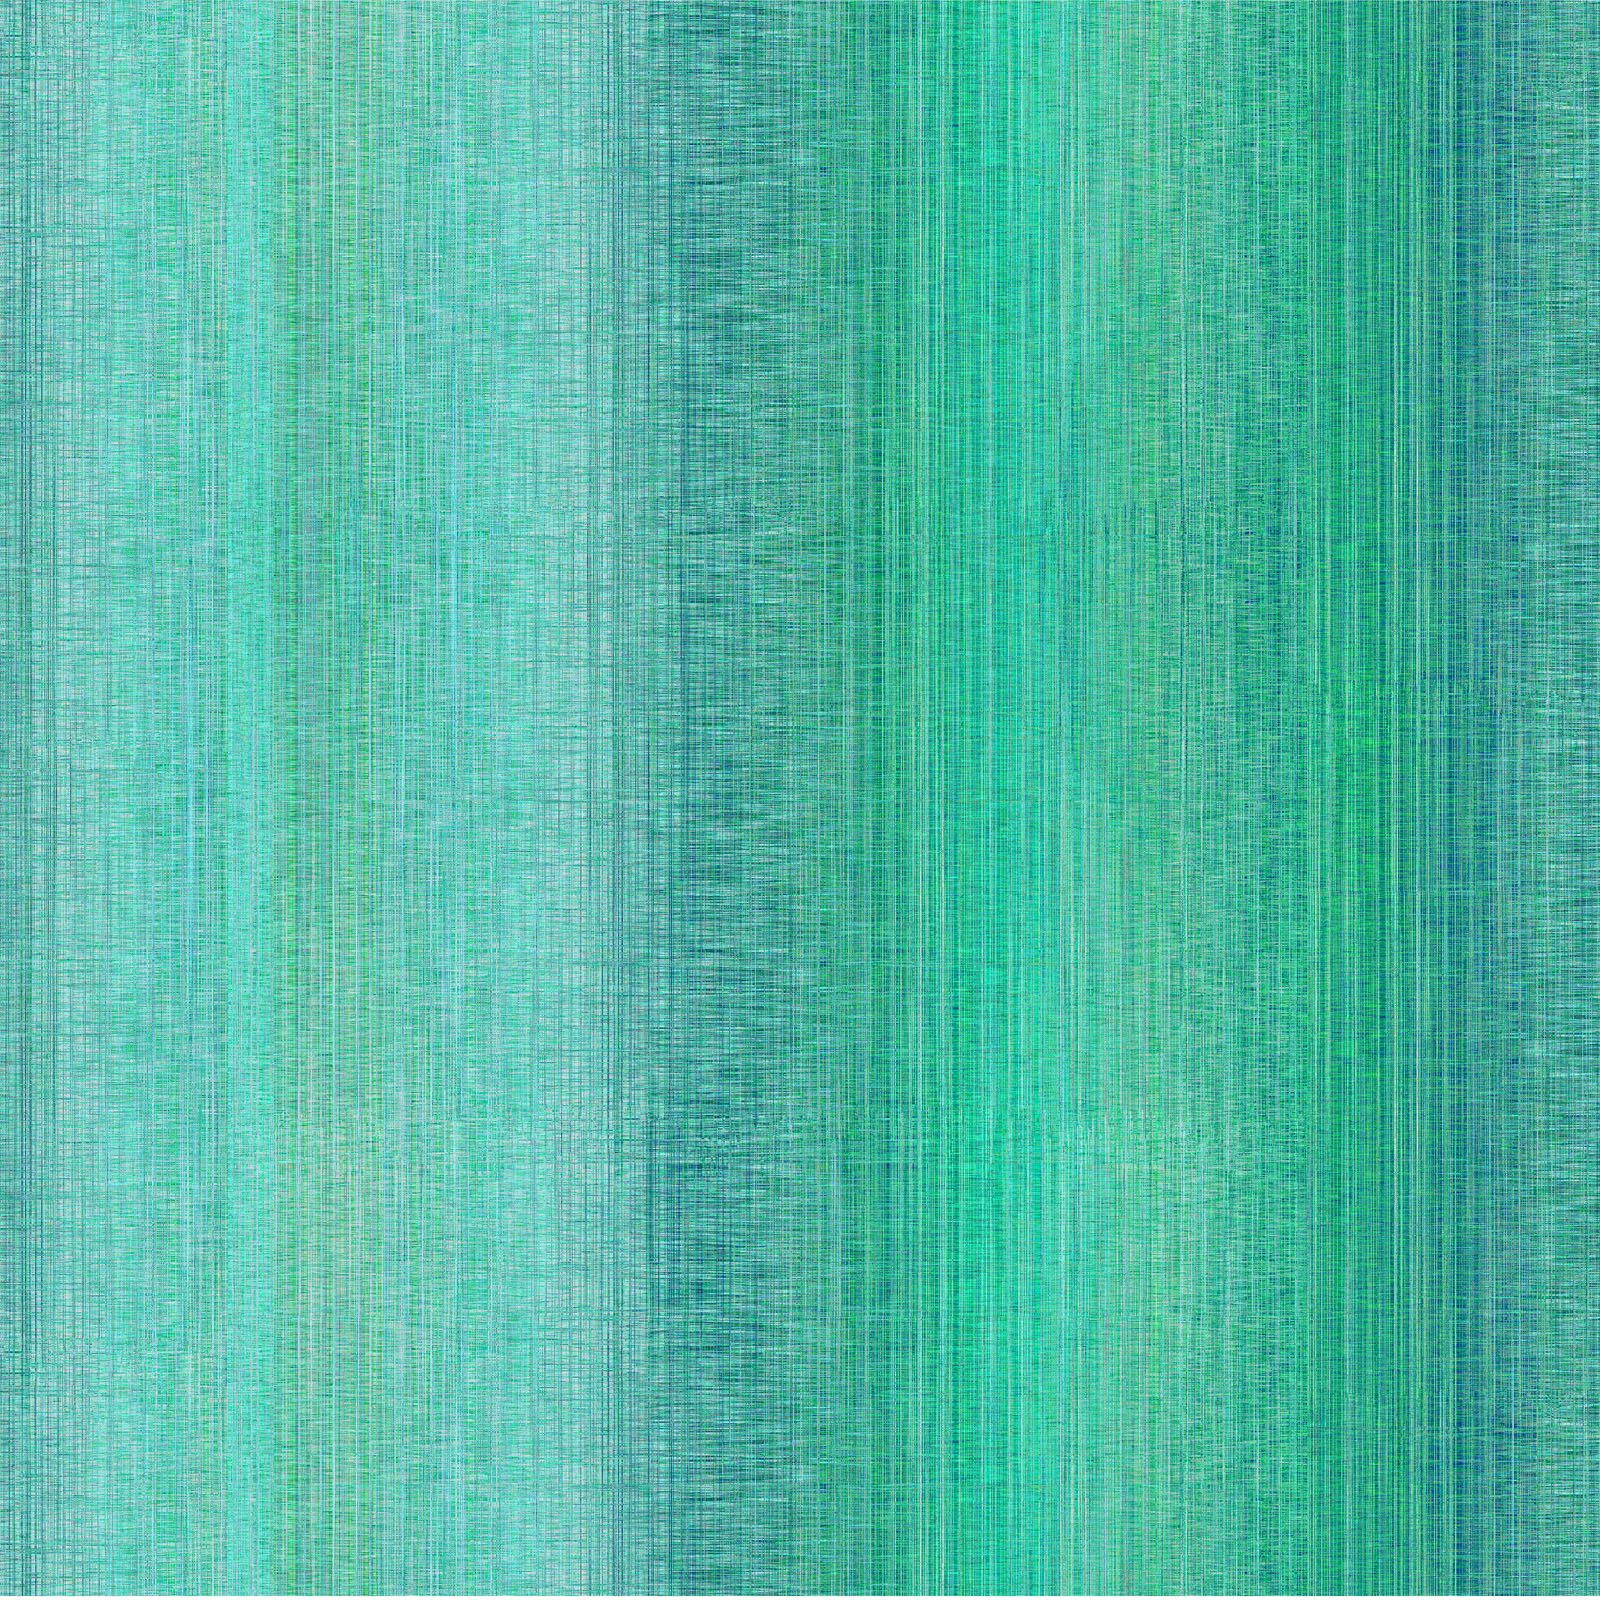 OMBR-4498 G - OMBRE 108 DIGITAL BY P&B BOUTIQUE GREEN - ARRIVING IN AUGUST 2021